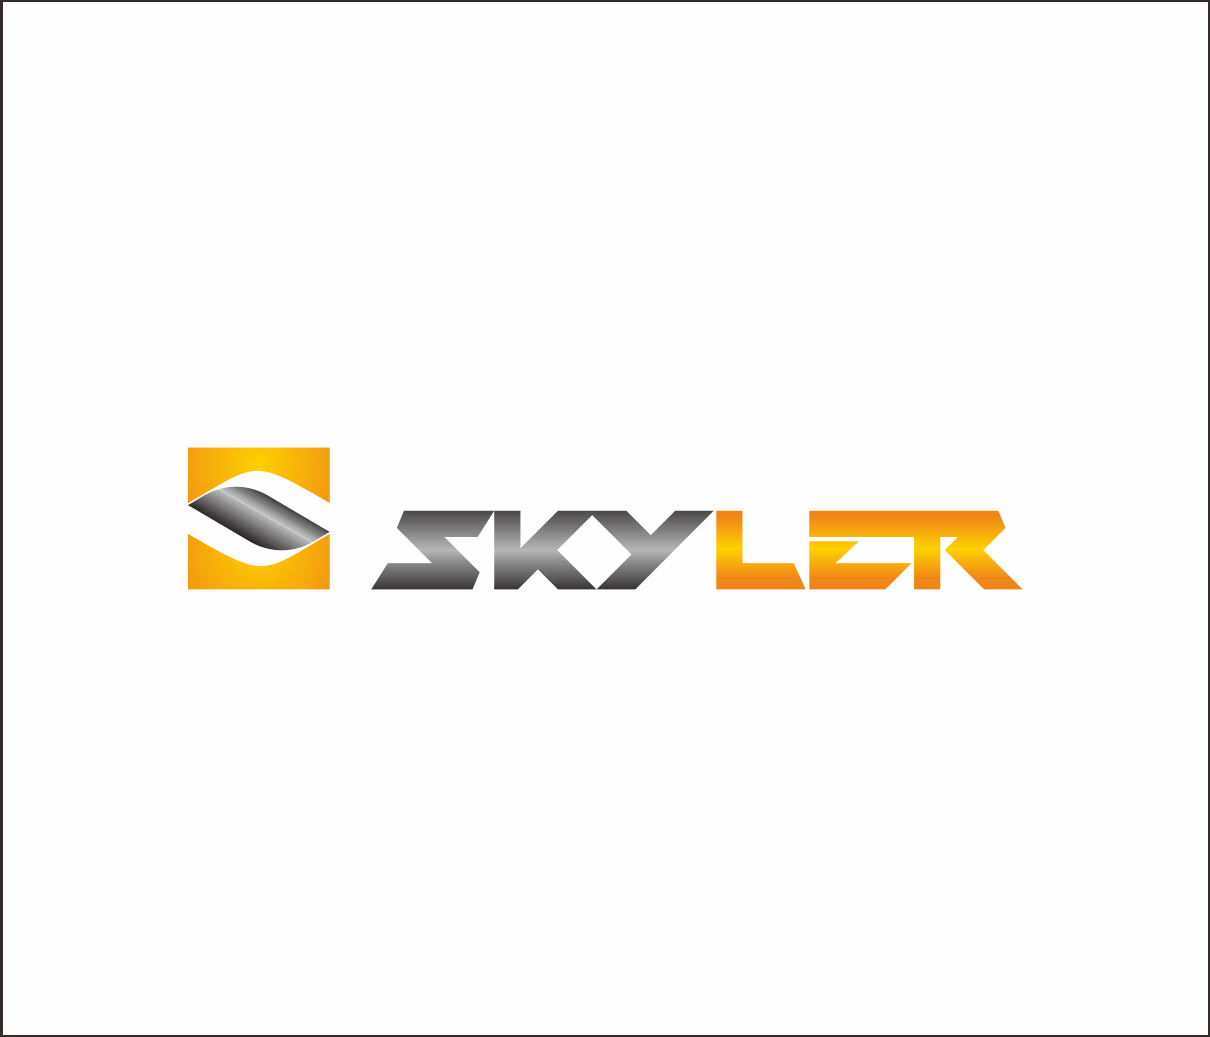 Logo Design by Armada Jamaluddin - Entry No. 249 in the Logo Design Contest Artistic Logo Design for Skyler.Asia.